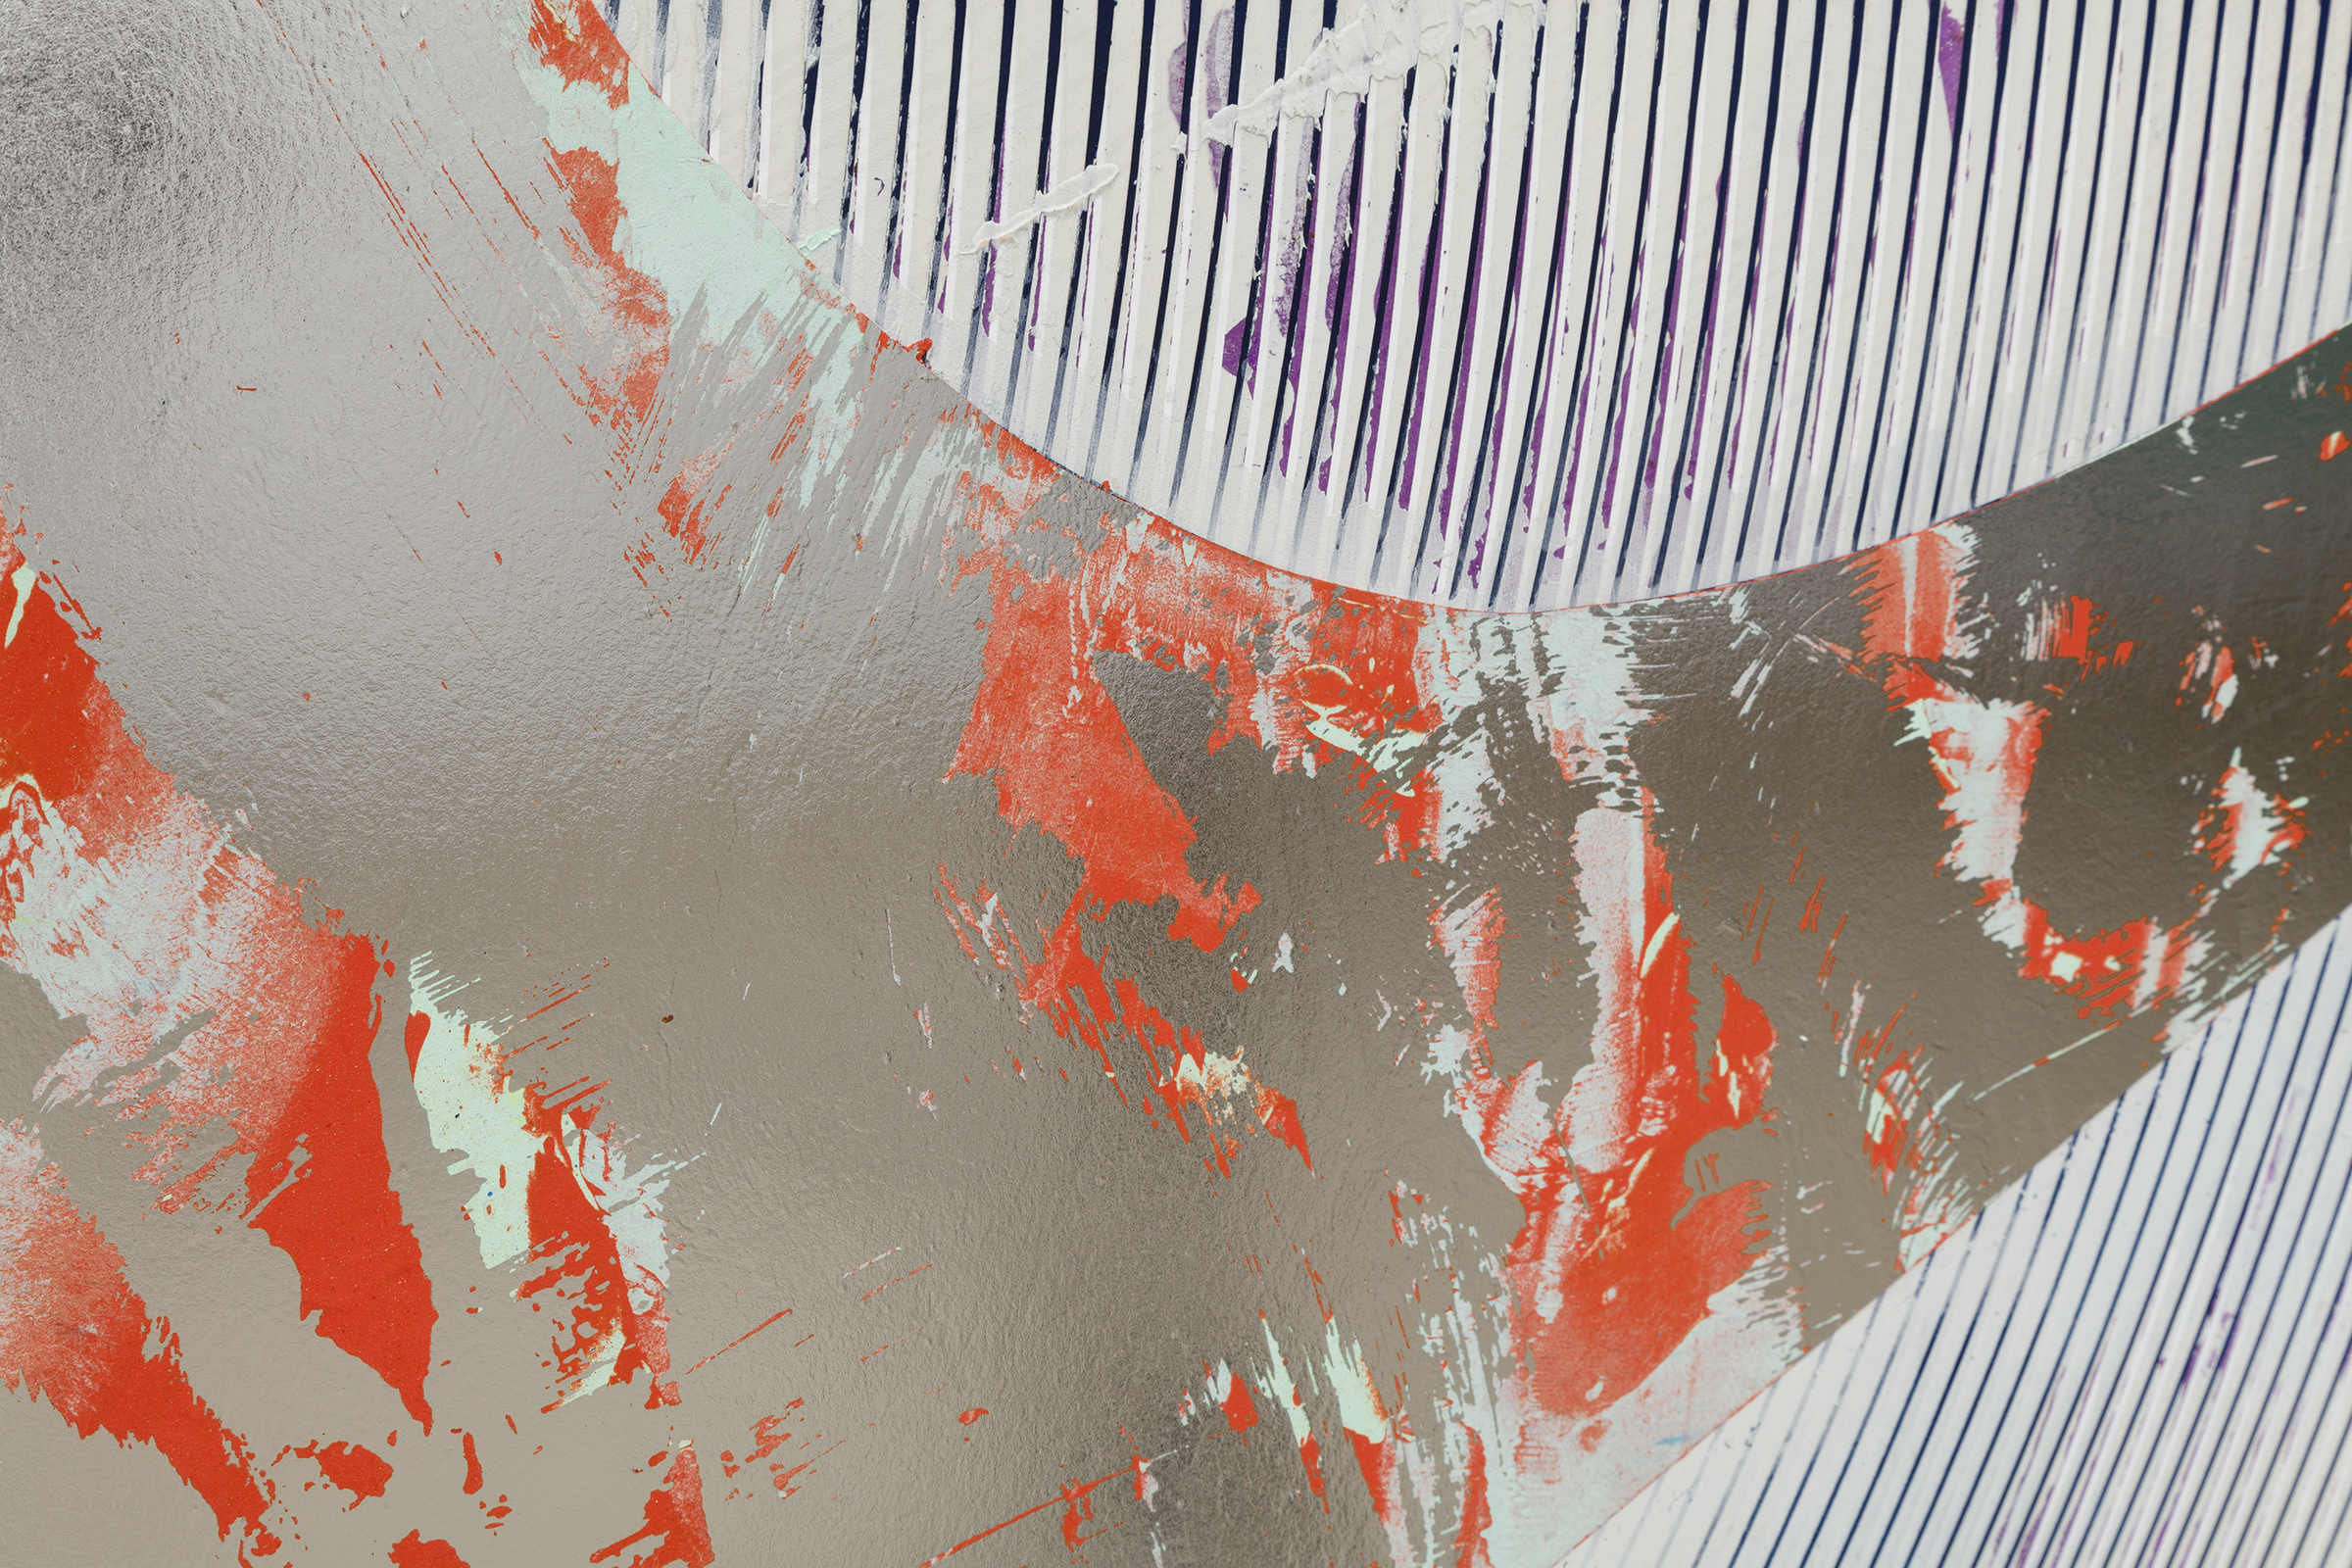 Nicolas Roggy, Untitled  (detail), 2014,primer, modeling paste, pigment,acrylic paint, silver leaf on PVC,92.9 x 82.7 x 1 in